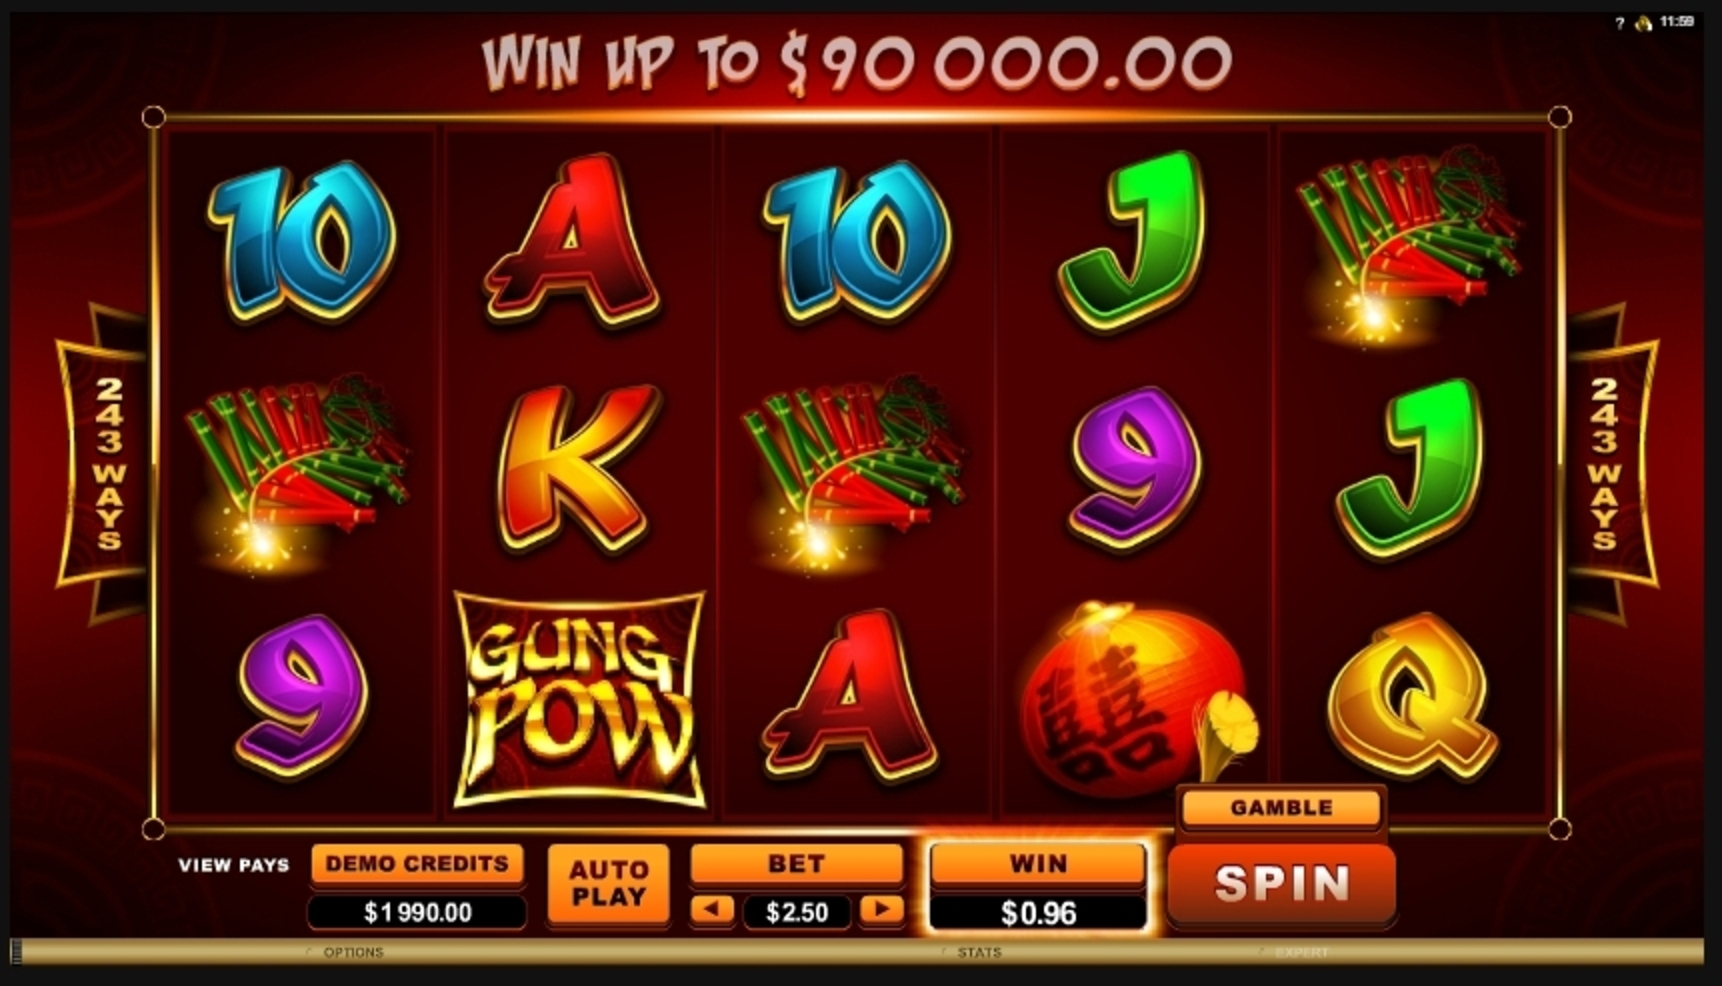 Win Money in Gung Pow Free Slot Game by Microgaming